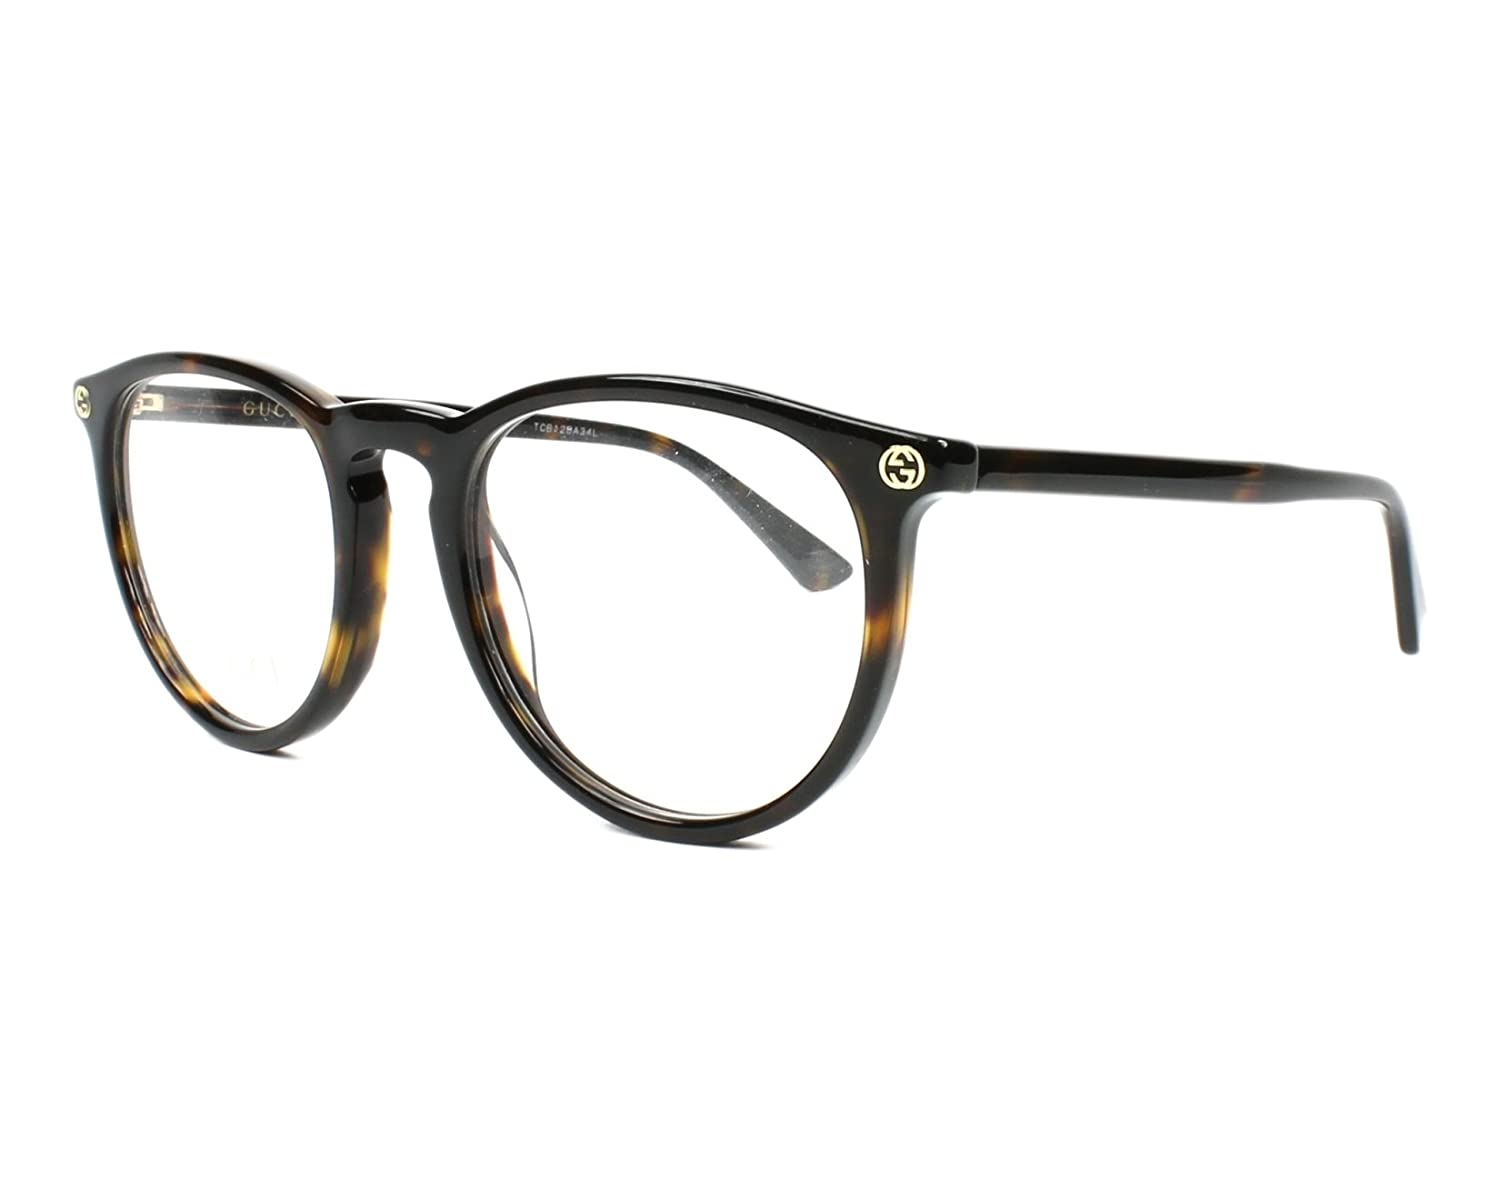 df072fbe3358 By emphasizing innovation, originality, quality and value Gucci has refined  its vision to earn worldwide recognition. Contemporary optical ...